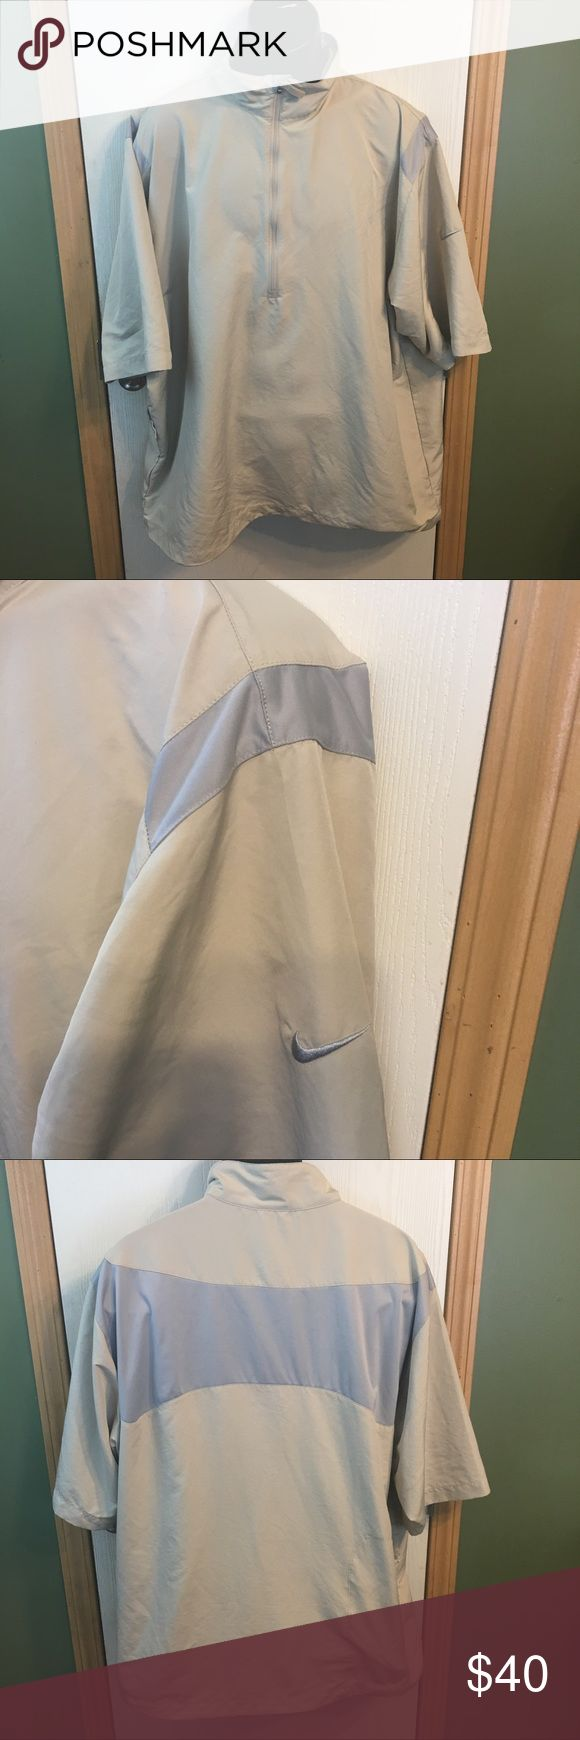 Nike Golf 1/2 Zip Pullover Windbreaker Size XXL This is a men's Nike Golf 1/2 Zip Tan Pullover Size XXL. This pullover is In excellent gently used condition with no visible defects. Please take a look at all photos for condition and if you have any questions feel free to ask. Nike Jackets & Coats Windbreakers